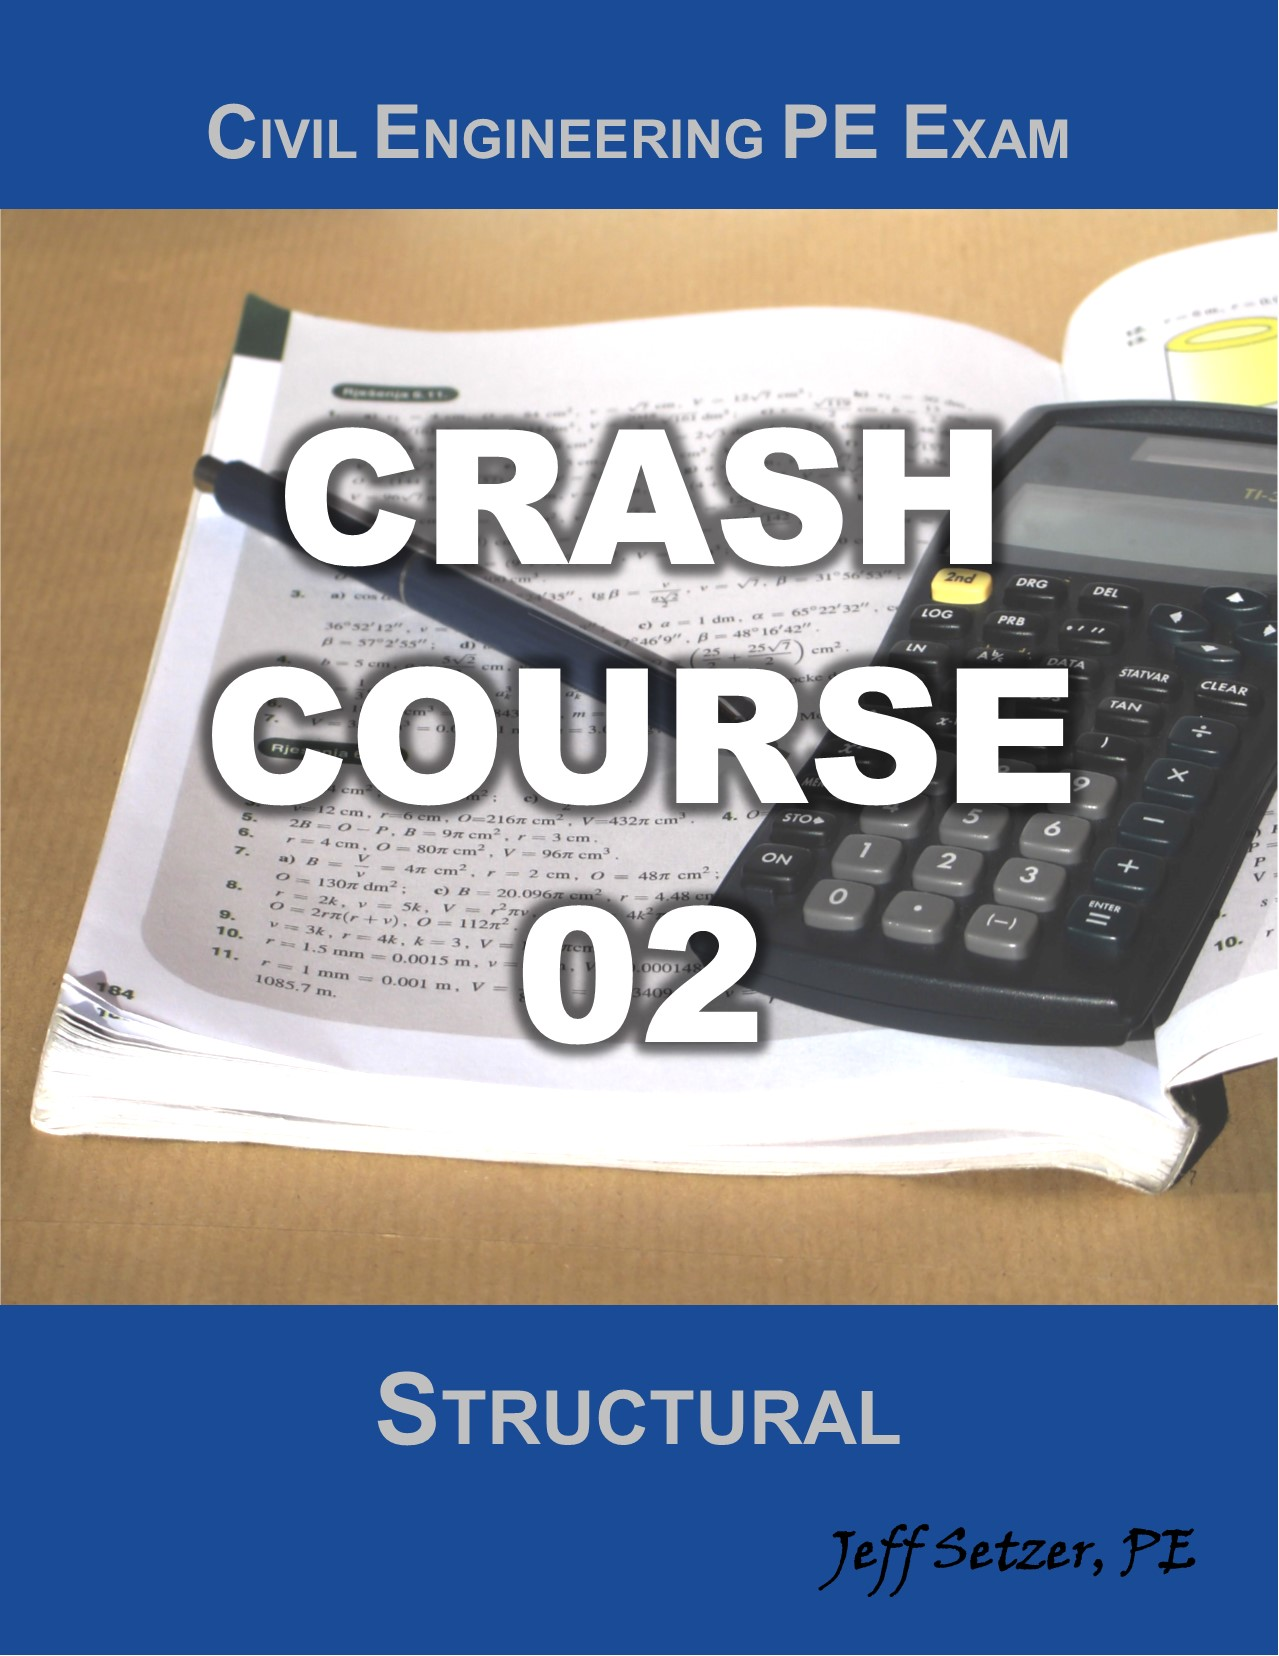 Civil Engineering Structural PE Exam Crash Course 02